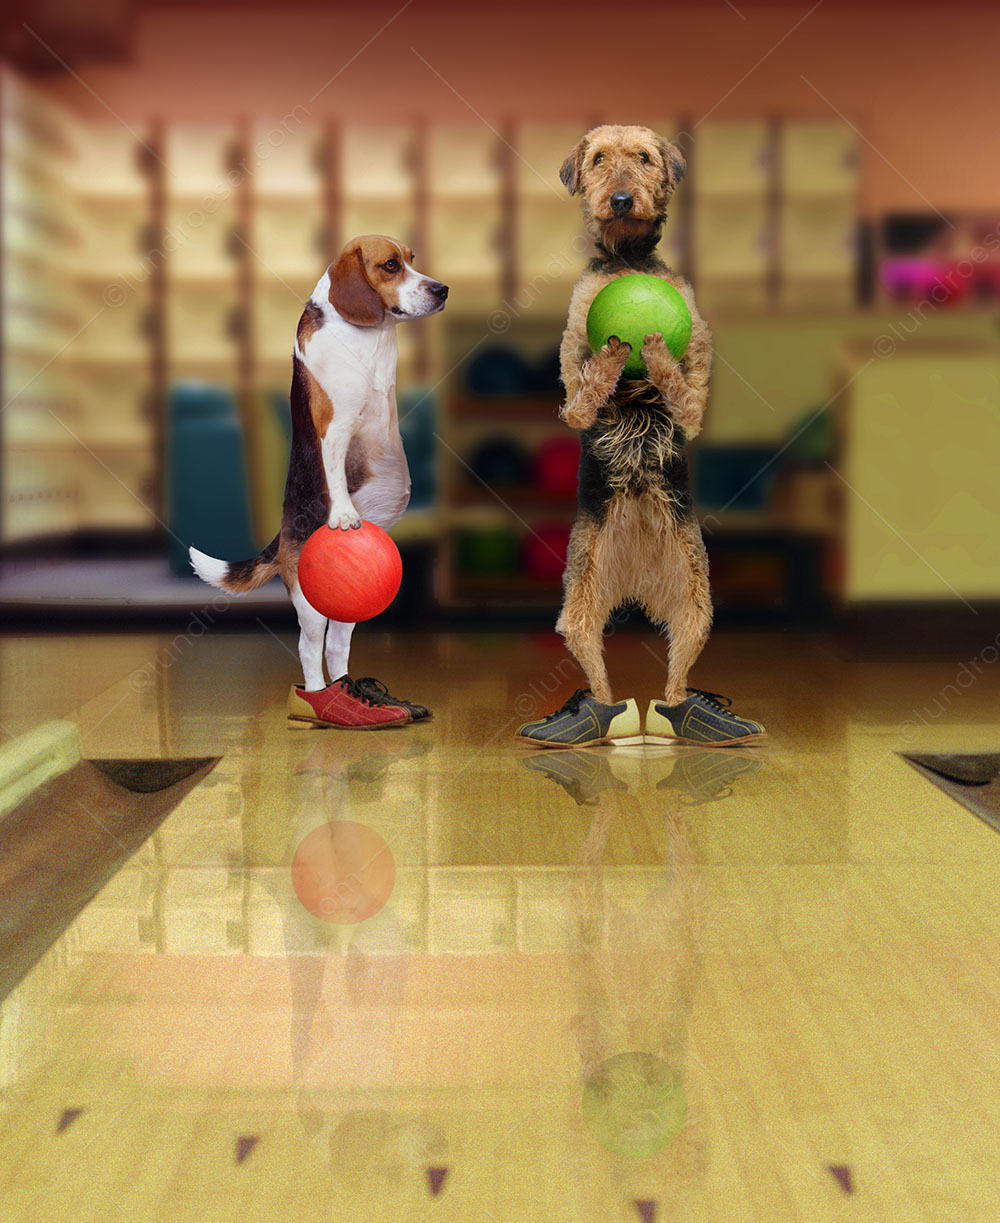 Bowling Dogs - Funny animal and stock photo of two dogs, an Airdale and a Beagle, bowling and wearing bowling shoes. Funny Greeting Card.